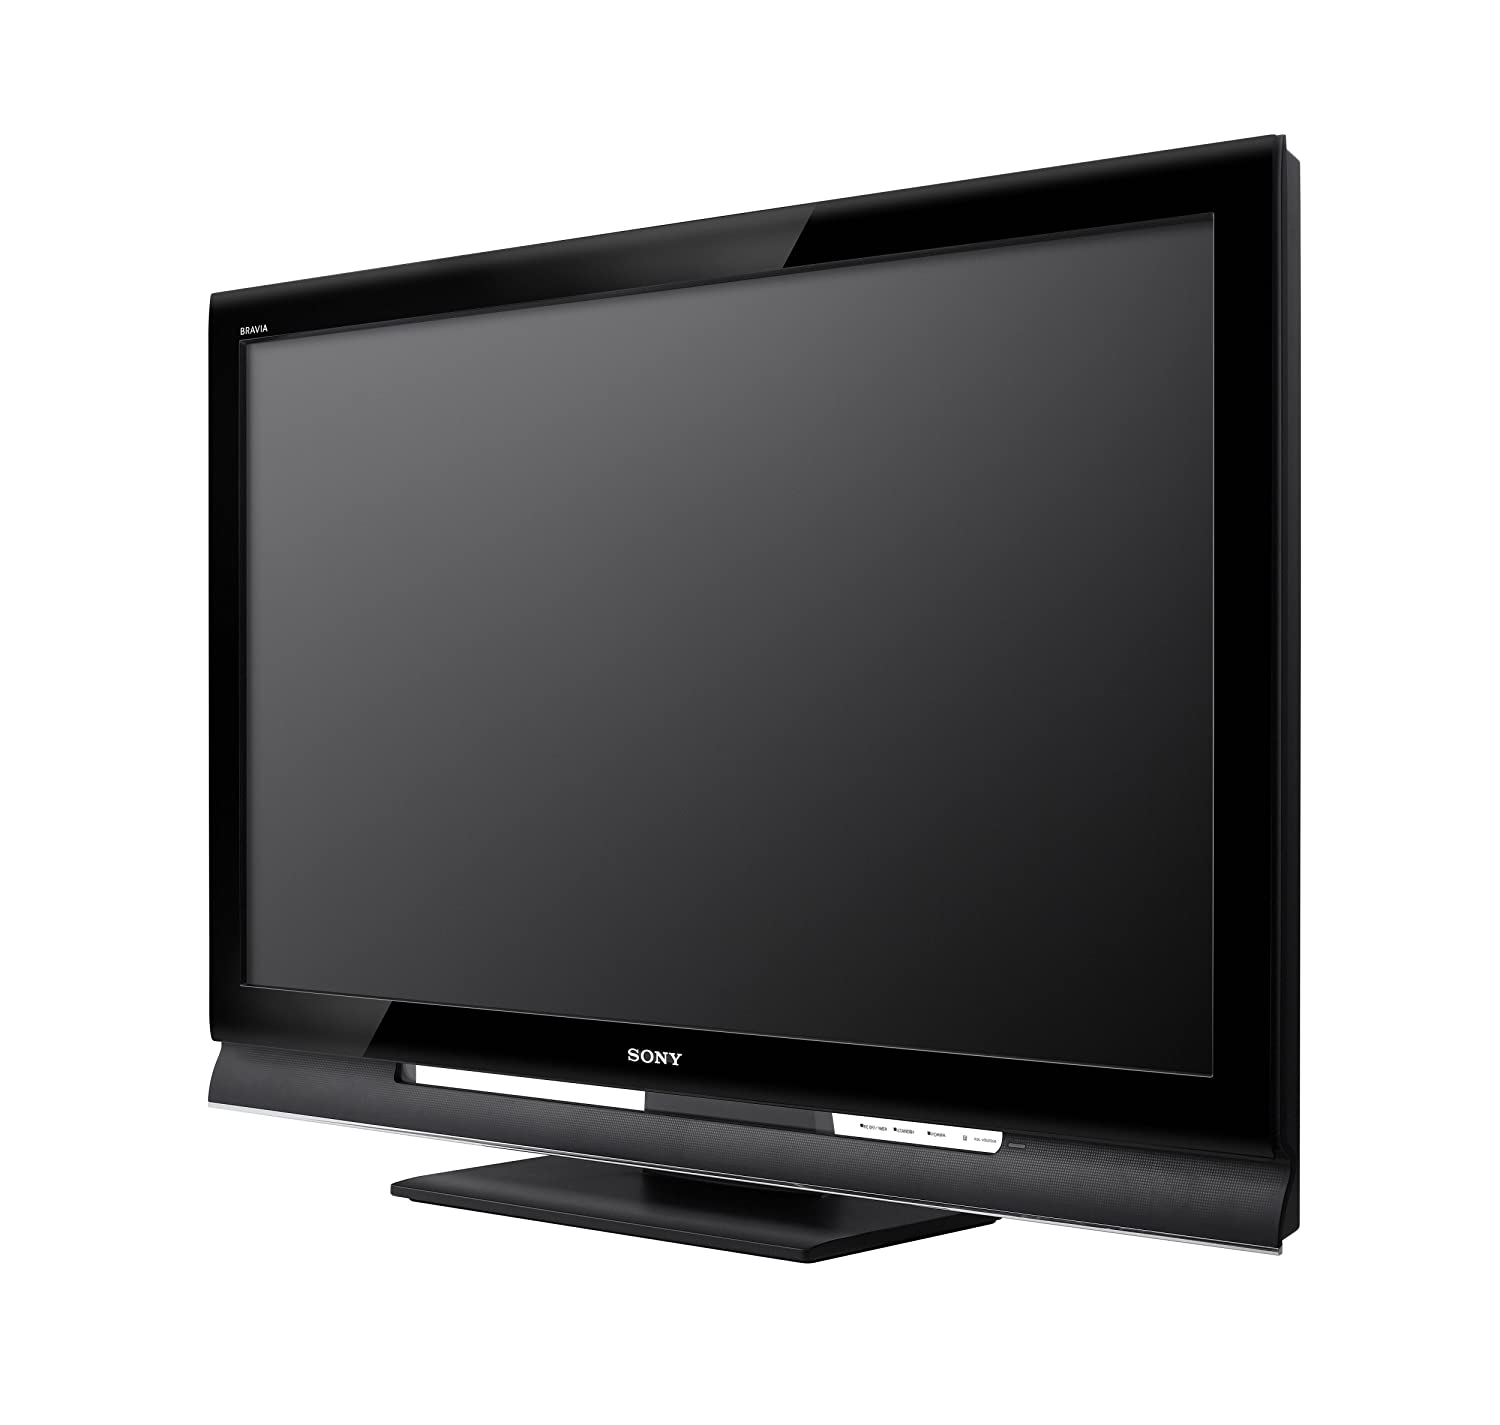 sony bravia tv 2008. amazon.com: sony bravia s-series kdl-46s4100 46-inch 1080p lcd hdtv: electronics tv 2008